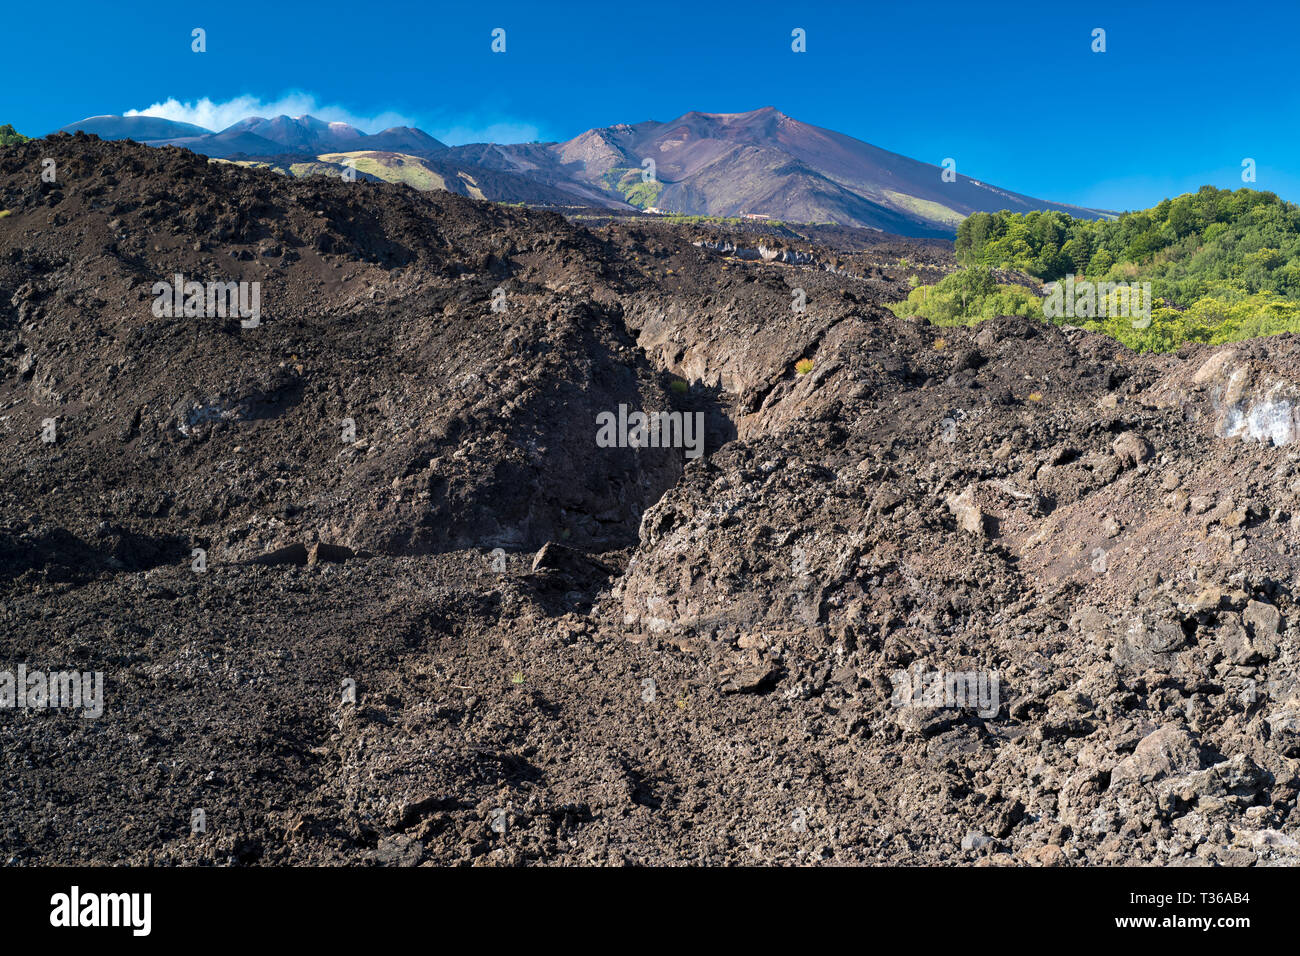 Lava field caused by volcanic eruption of Mount Etna an active stratovolcano on the east coast at Taormina, Sicily, Italy Stock Photo